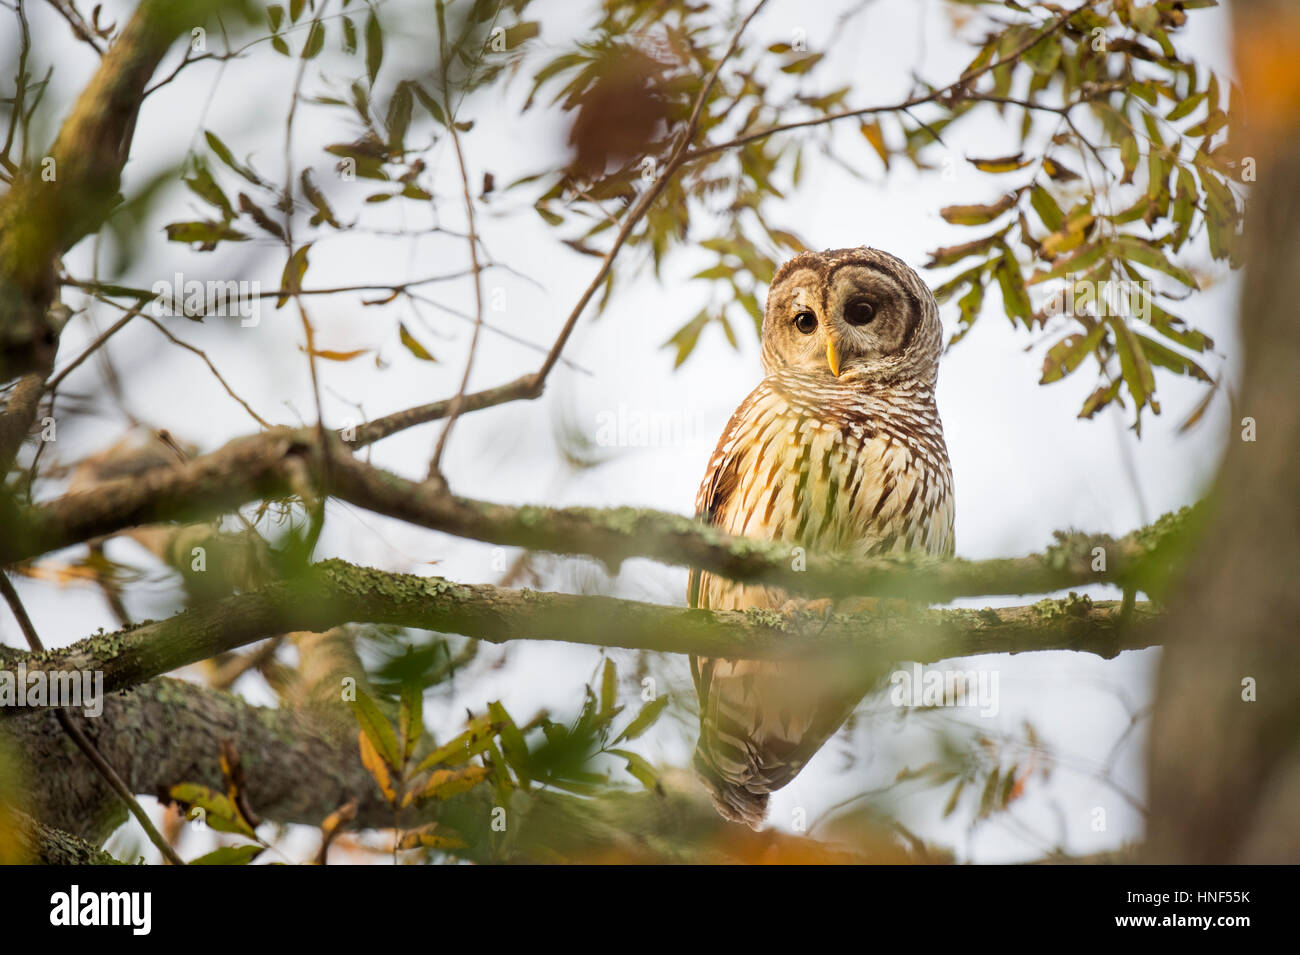 A Barred Owl sits in a tree as the early morning sunlight shines on it showing off its large eyes. - Stock Image